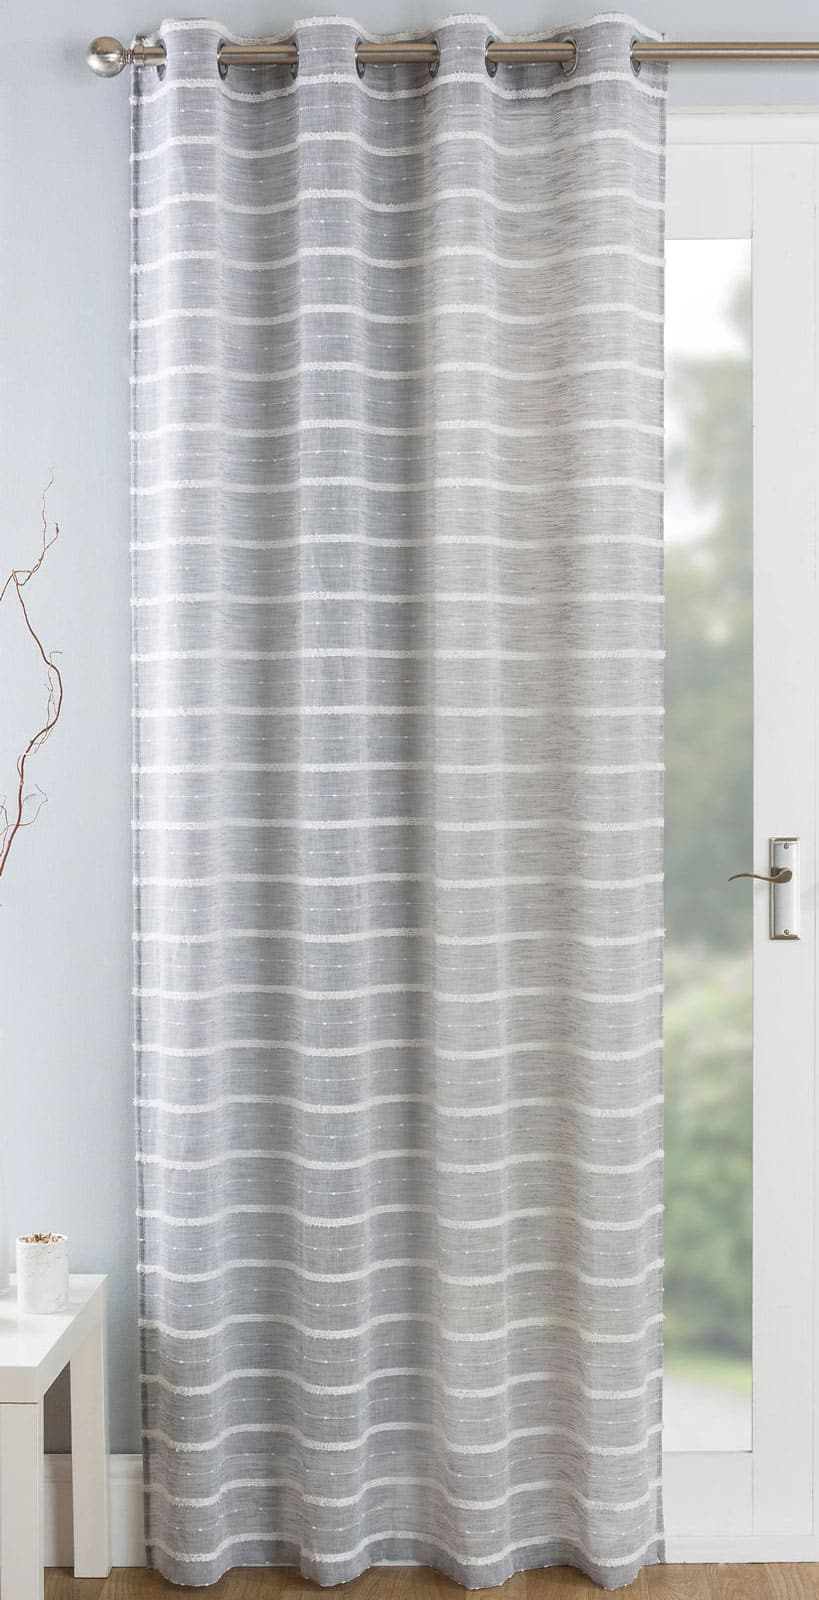 Antigua Eyelet Voile Curtain Panels Grey -  - Ideal Textiles